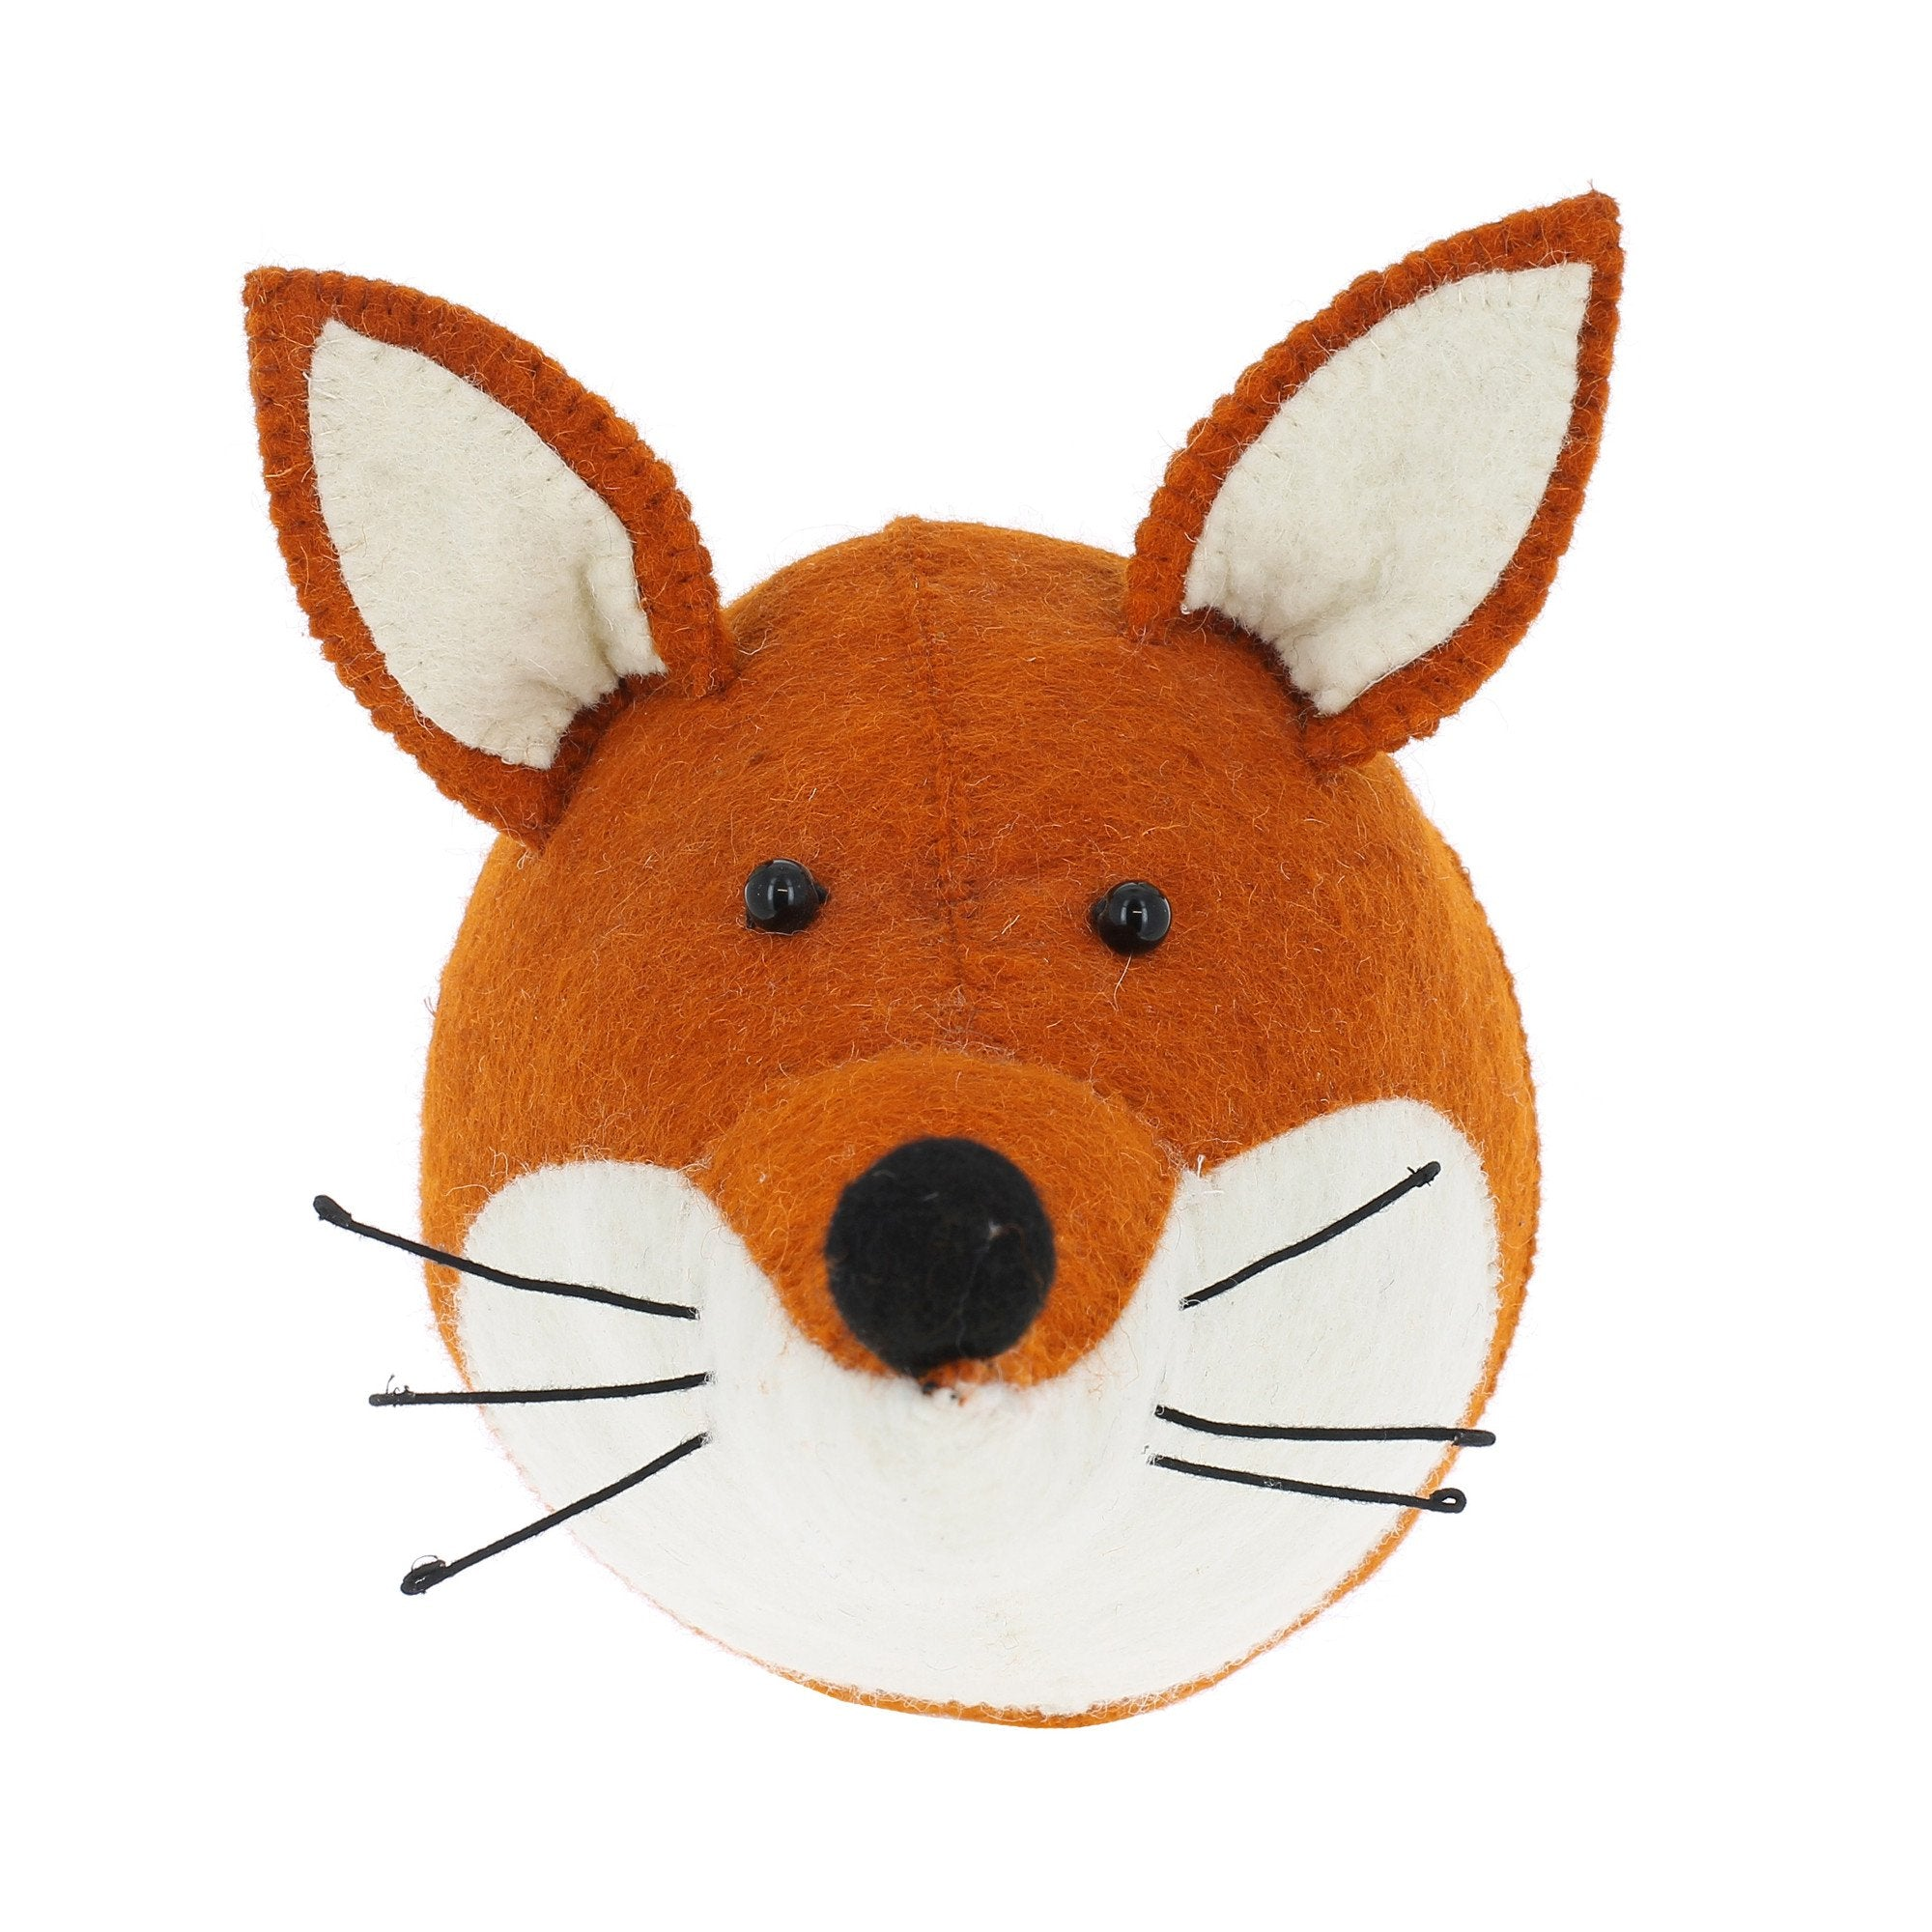 Fiona Walker England Fabulous Felted Wool Fox Head Wall Hanging Homeware- a-fly-went-by.myshopify.com